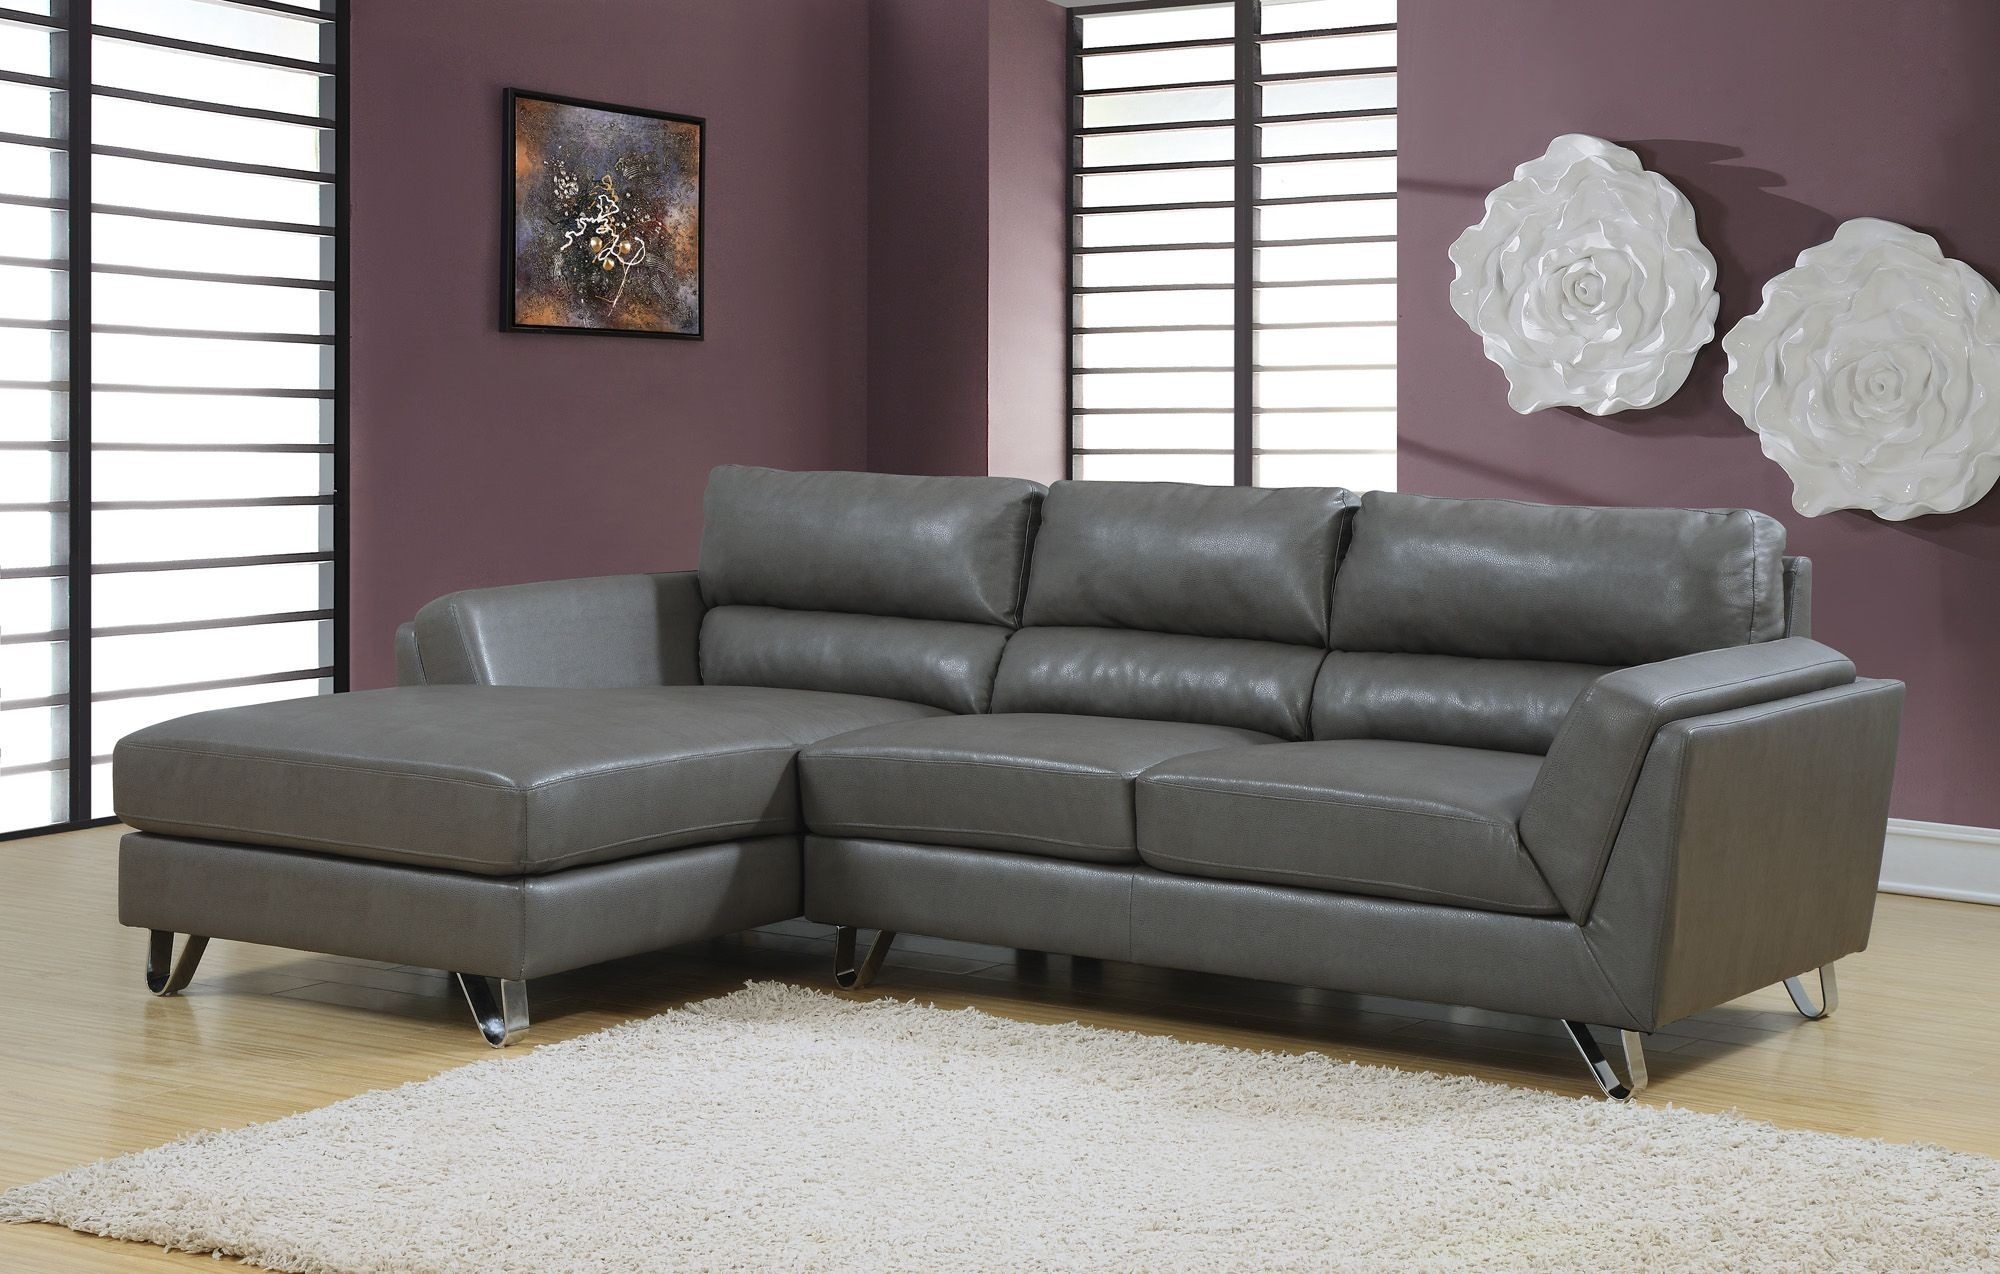 Gray Sectional Sofas Charcoal Sofa Match Frankfort Convertible Grey Inside Sectional Sofas In Stock (View 3 of 10)